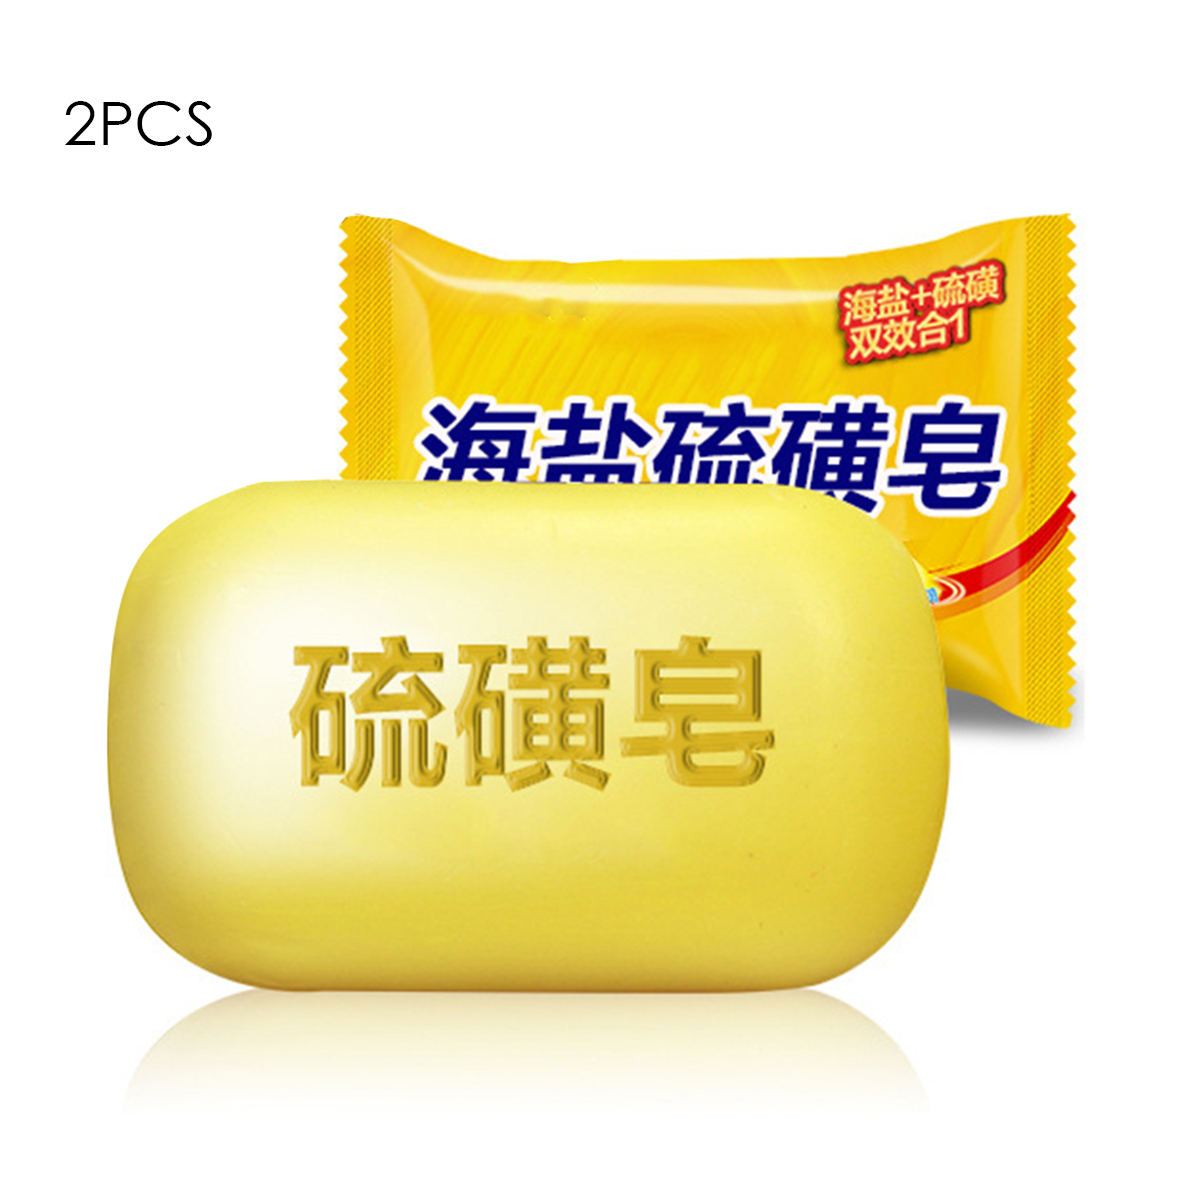 2pcs/5pcs Sulfur Soap Oil-Control Treatment Itching Relief Remover Soap For Face Hand Cleansing Bathing Cleanser Skin Care